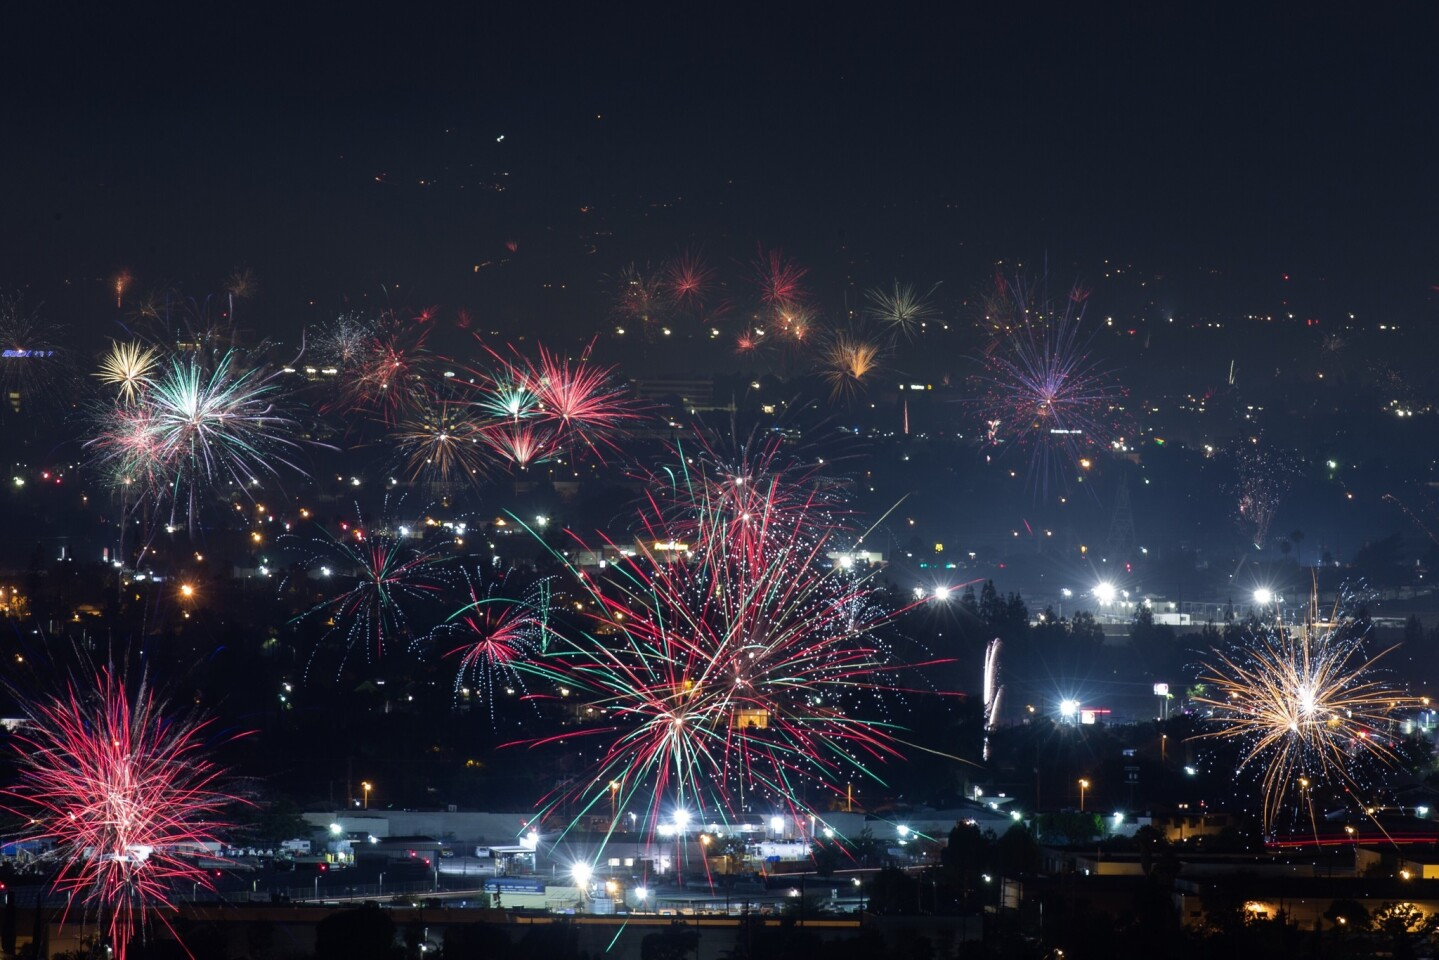 Fireworks over North Hollywood, as seen from the Burbank Hills on July Fourth.